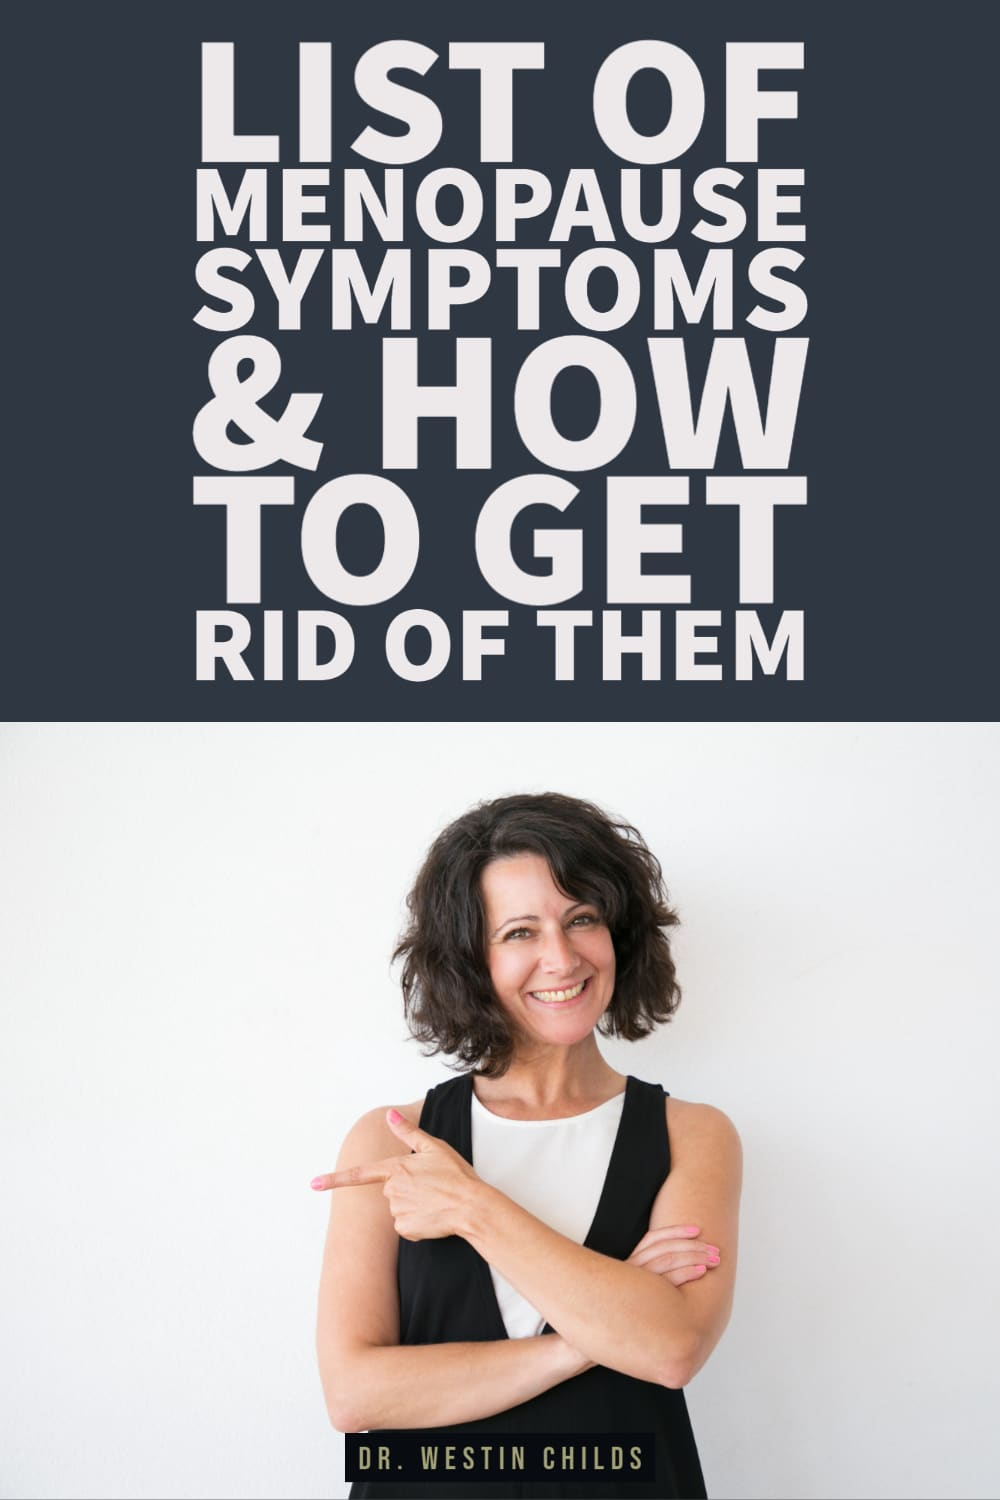 list of menopause symptoms and how to get rid of them